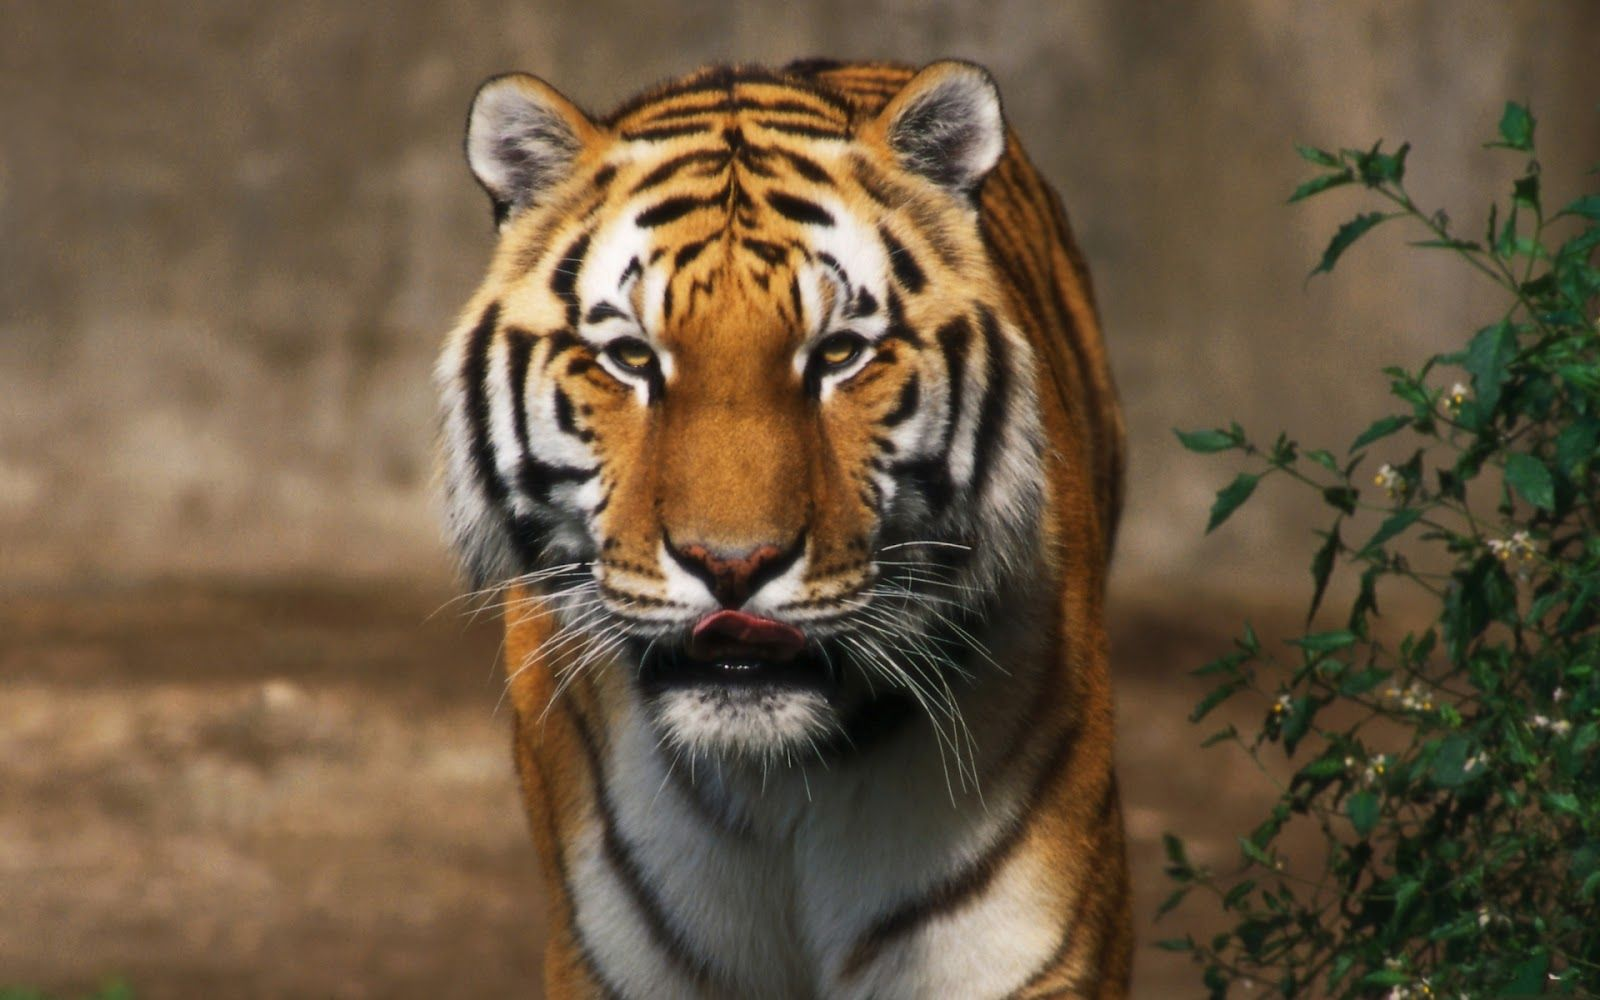 Lions And Tigers Wallpapers Free Download